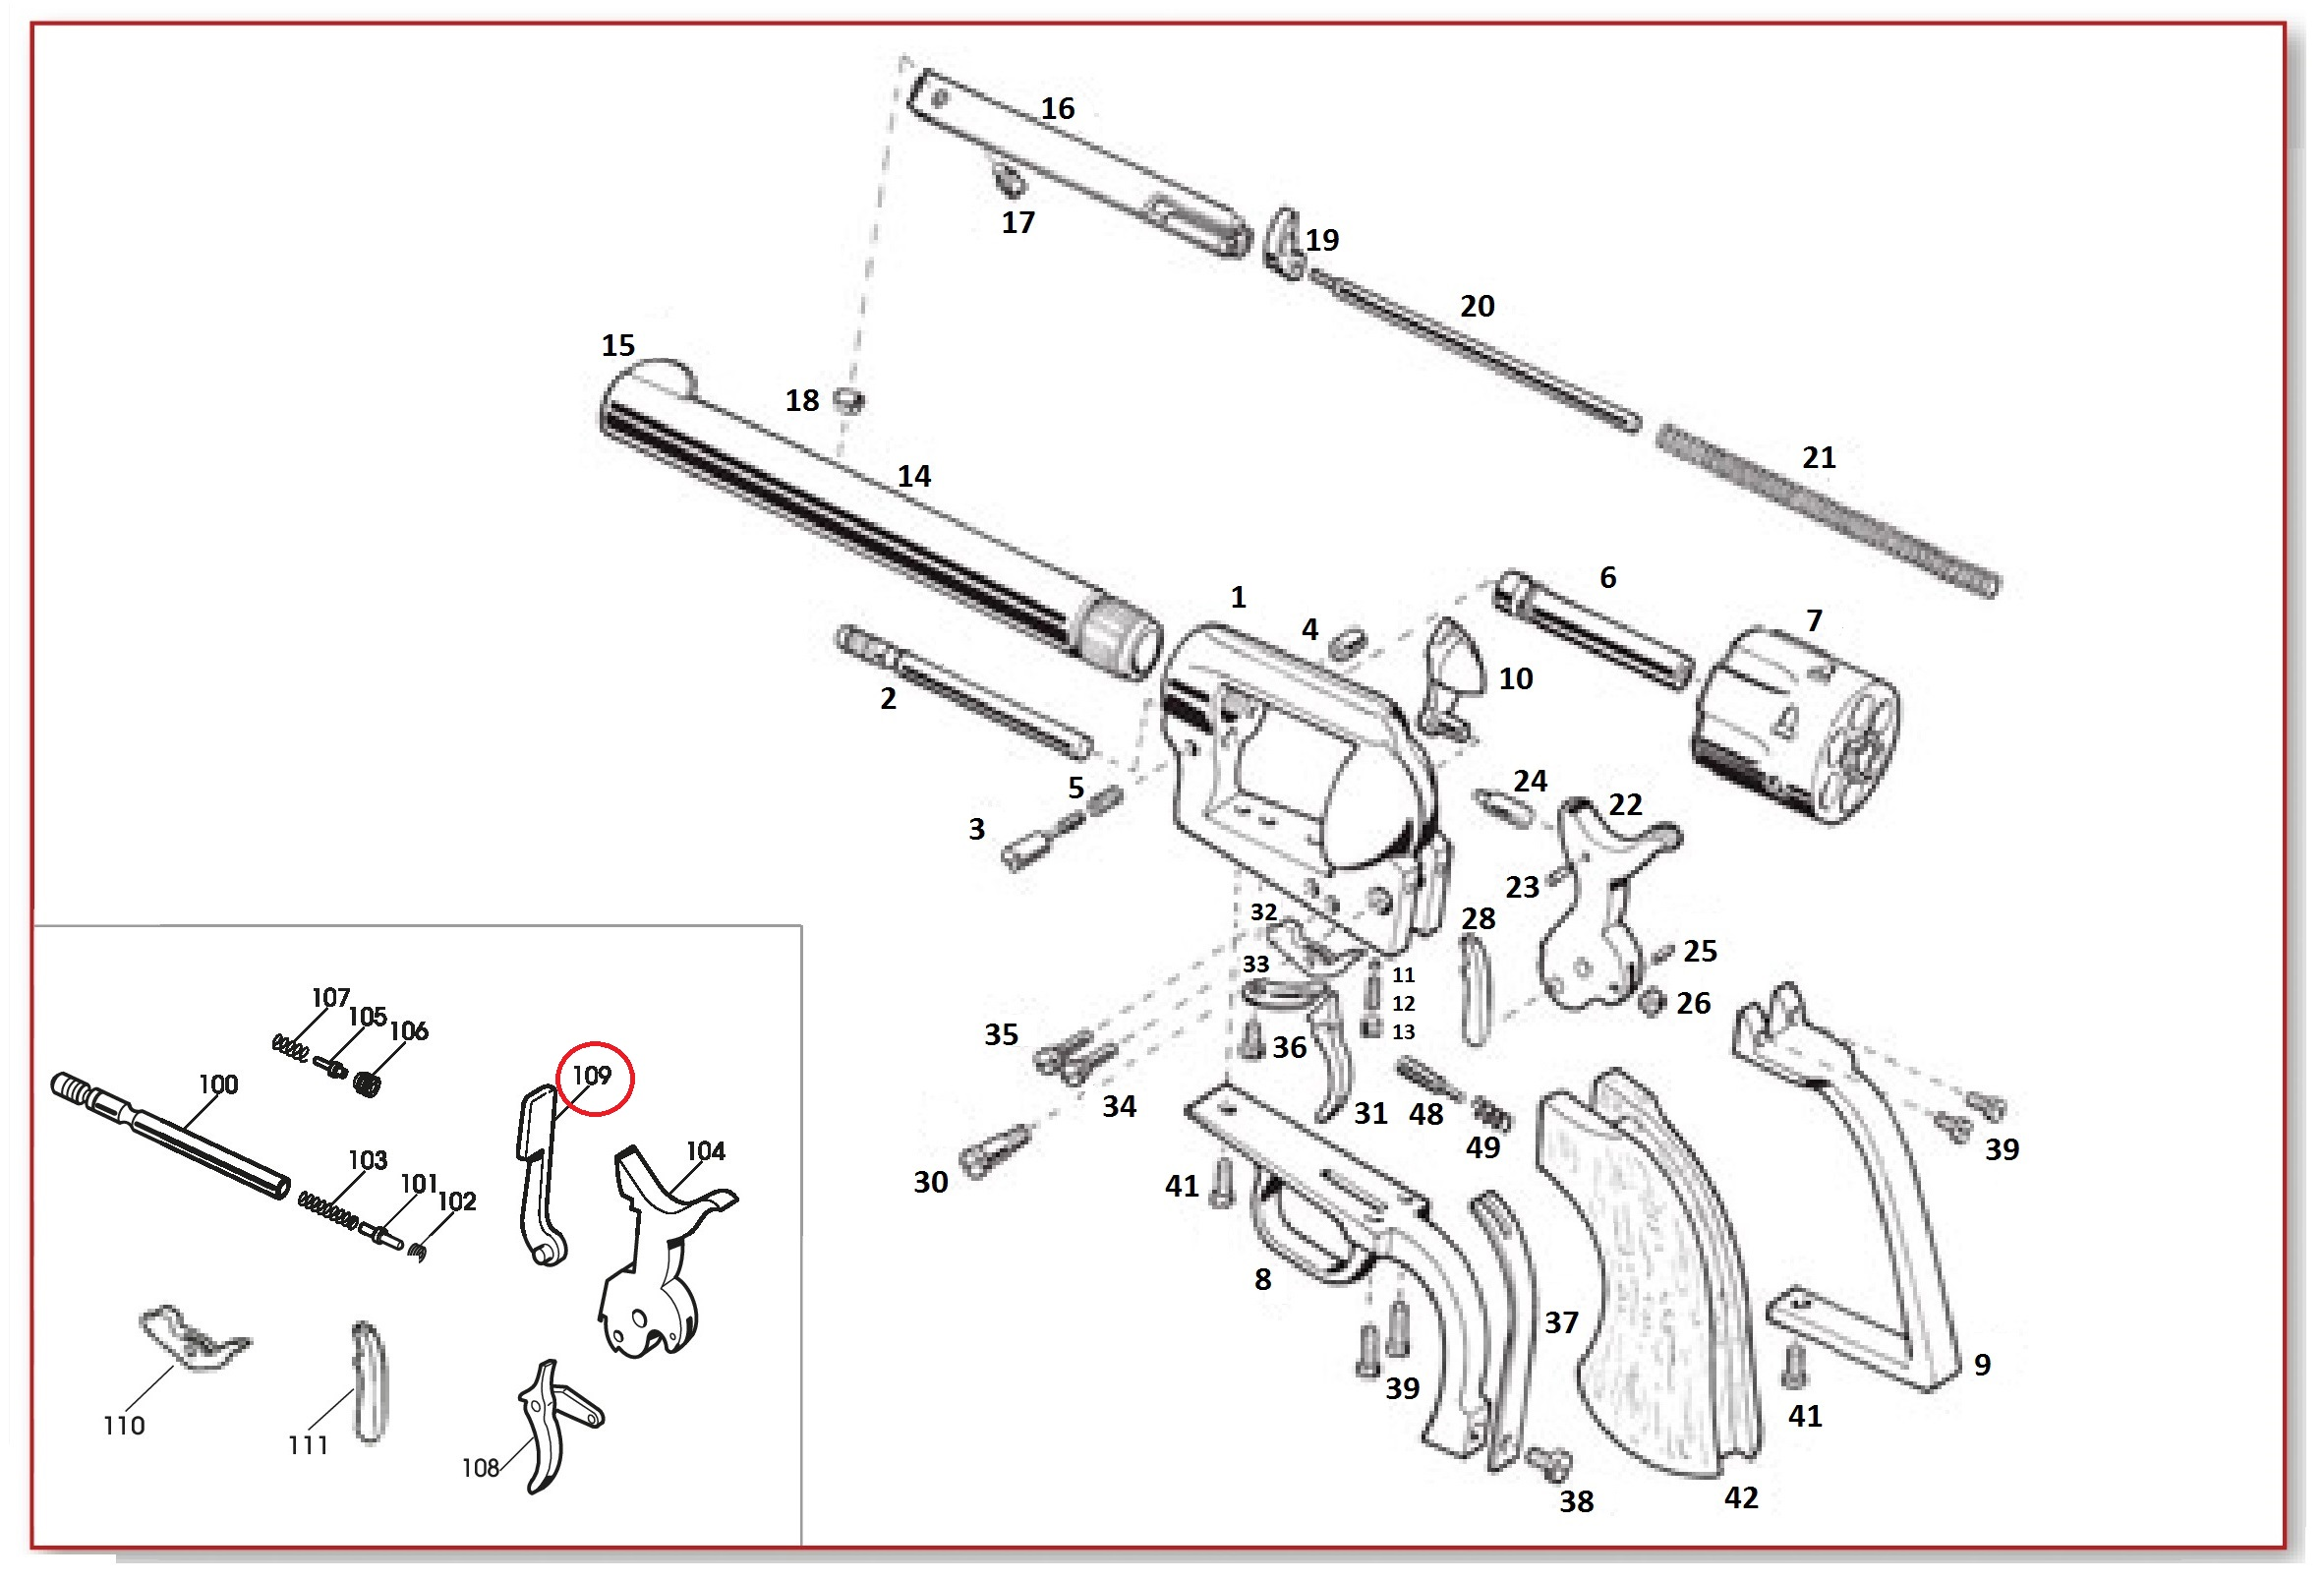 109 Transfer Bar Lever 1911 Exploded Diagram Quick View